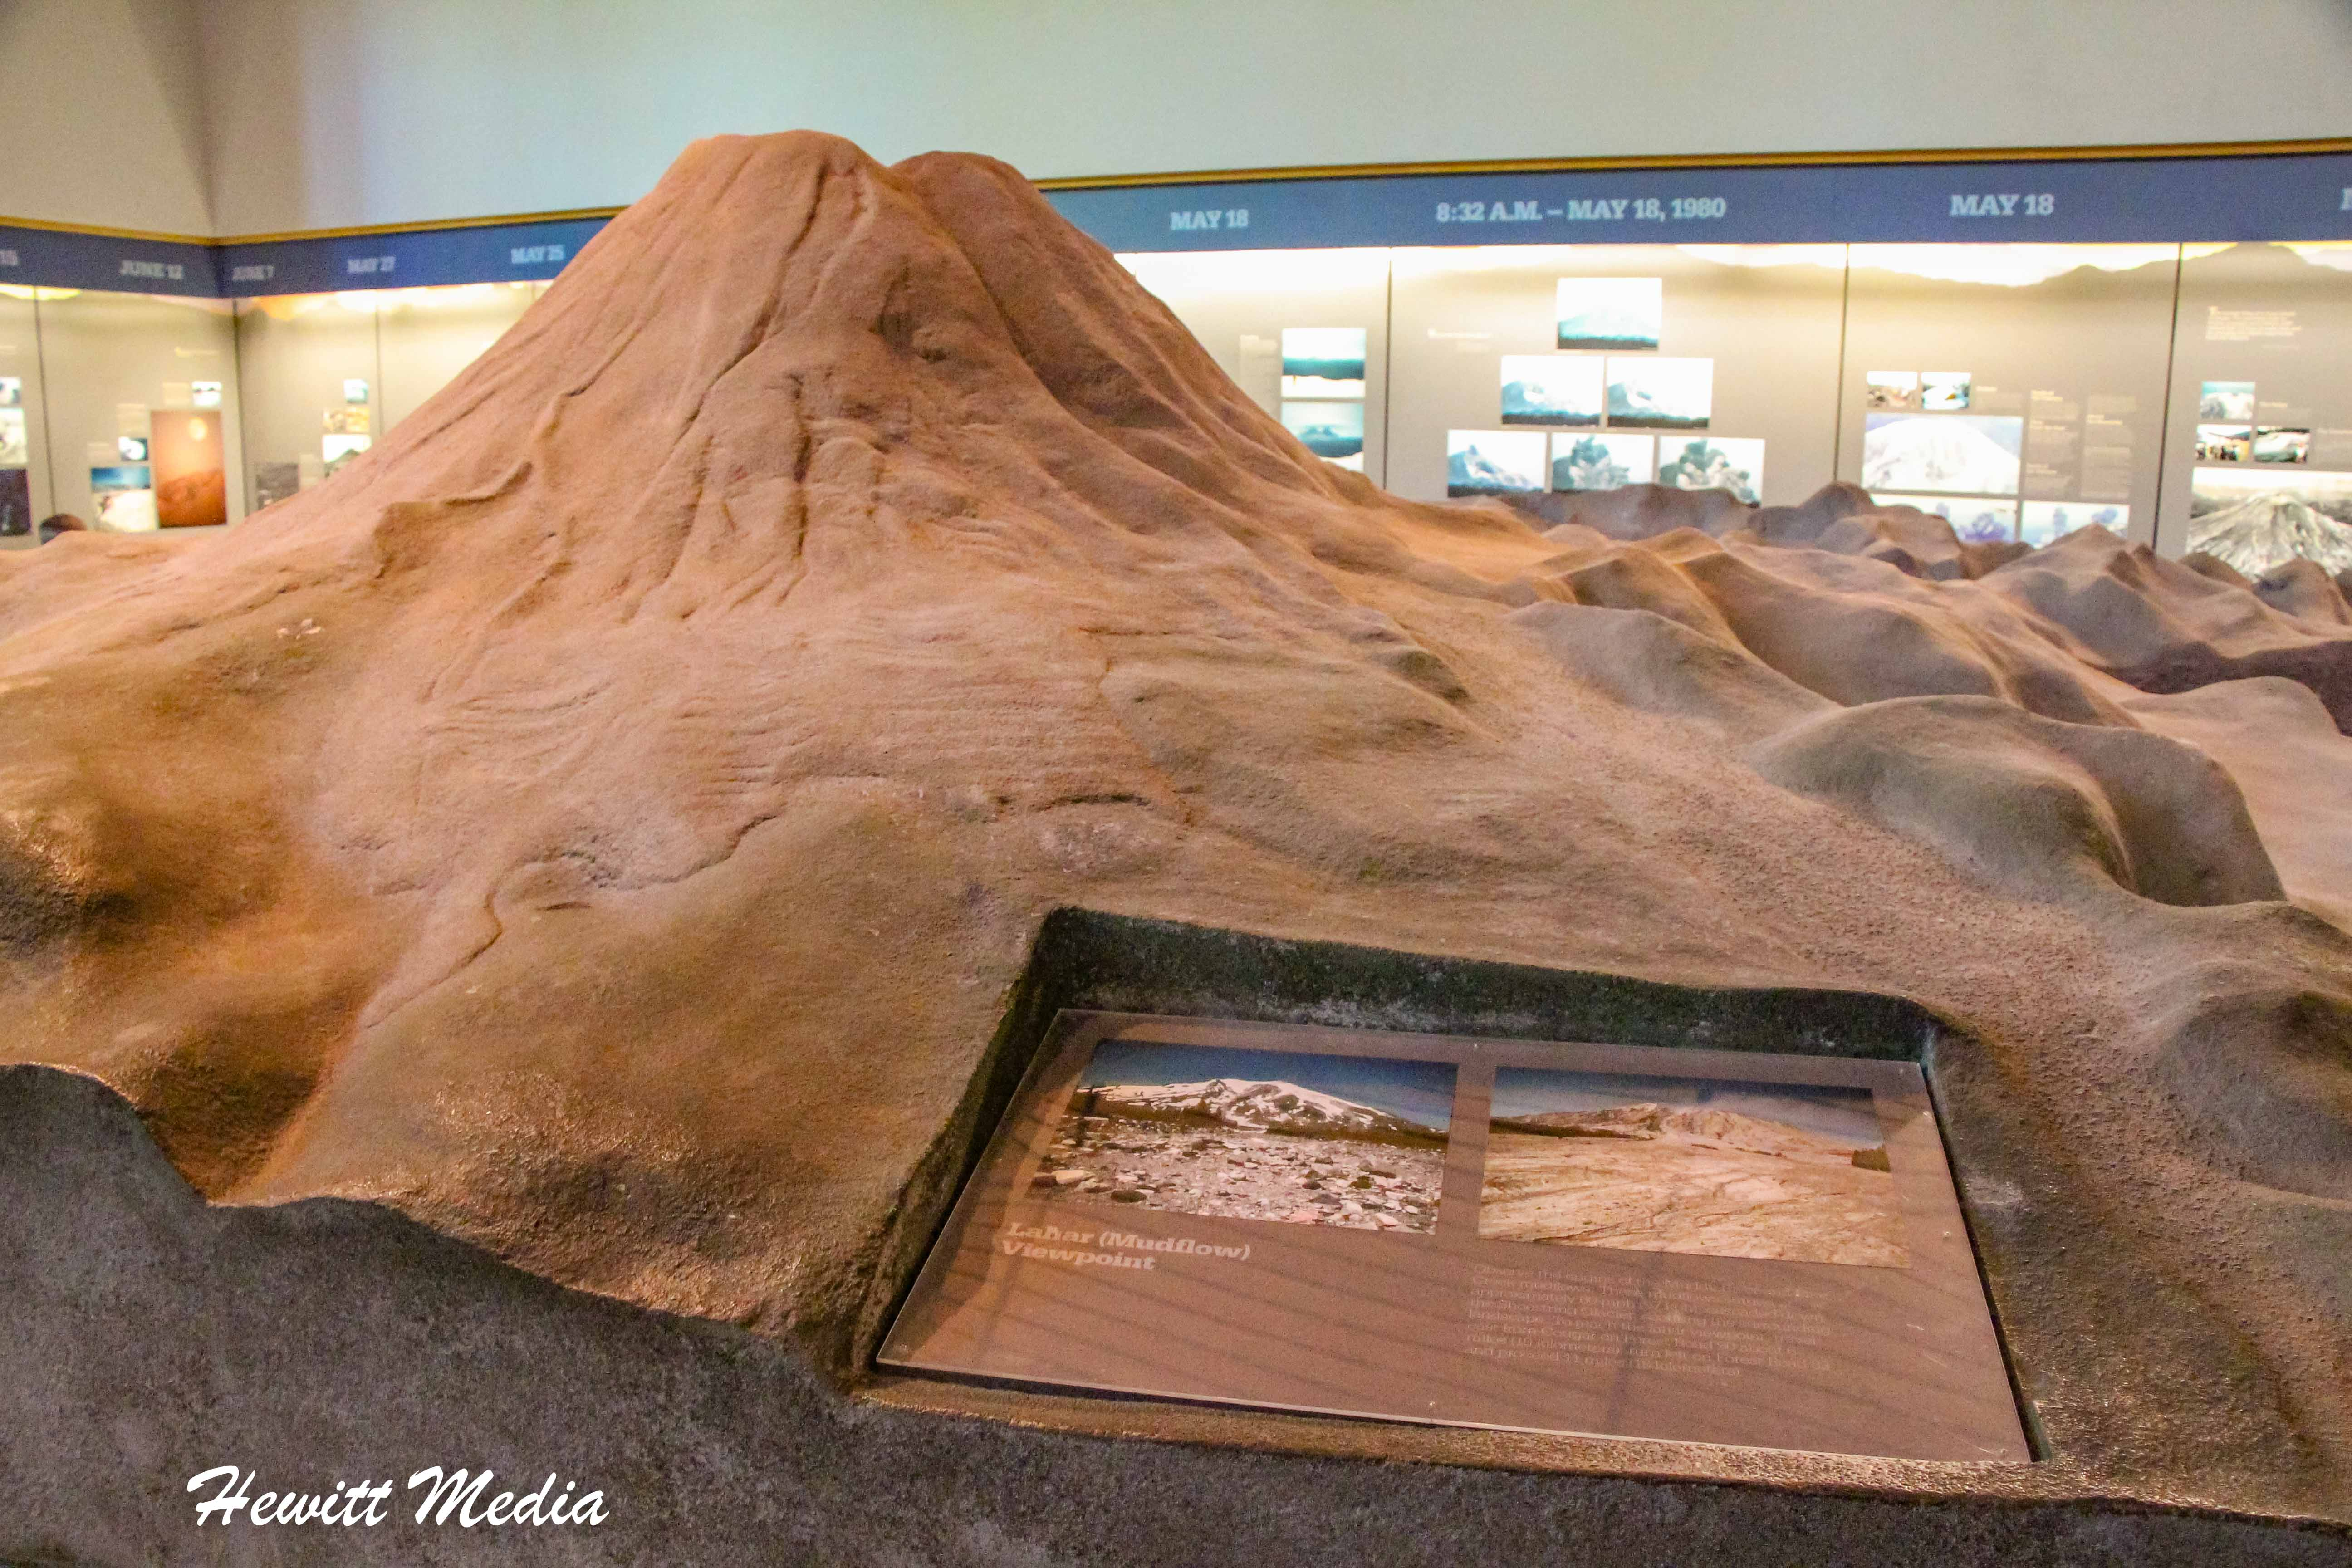 Model of Mount St. Helens in the visitor center